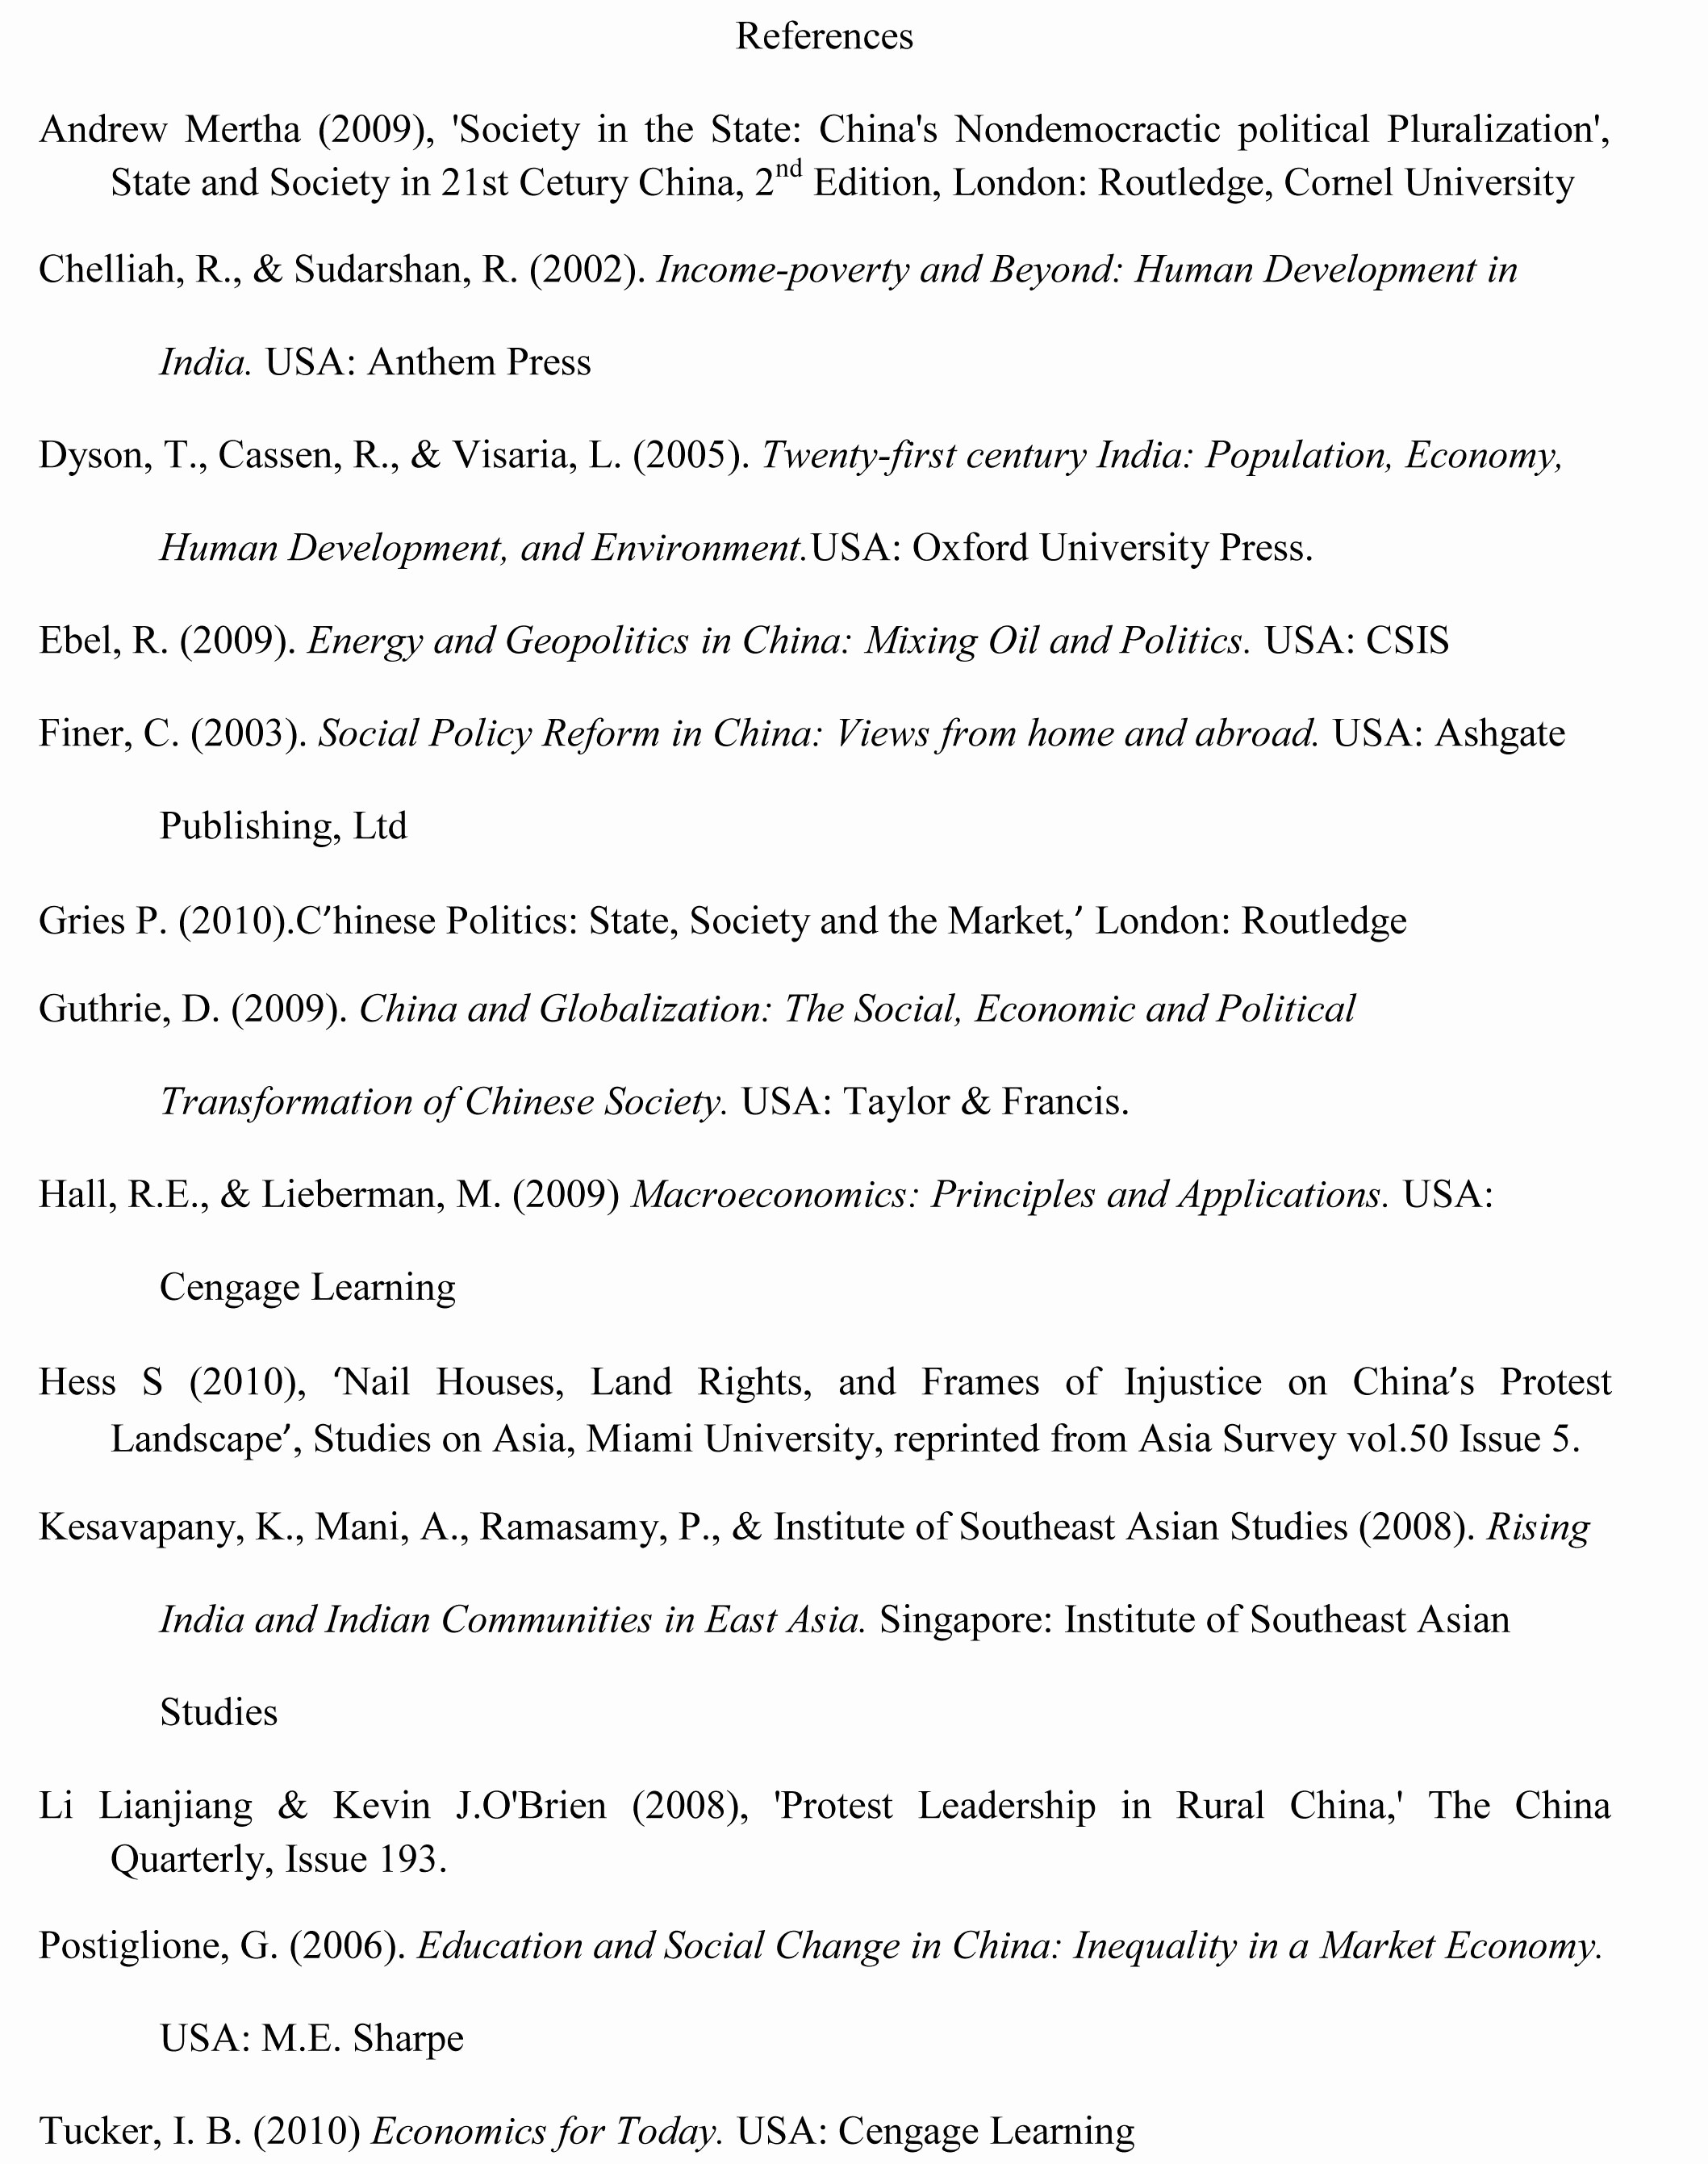 Sample Of List Of References Elegant Sample Reference List for Research Paper Bamboodownunder